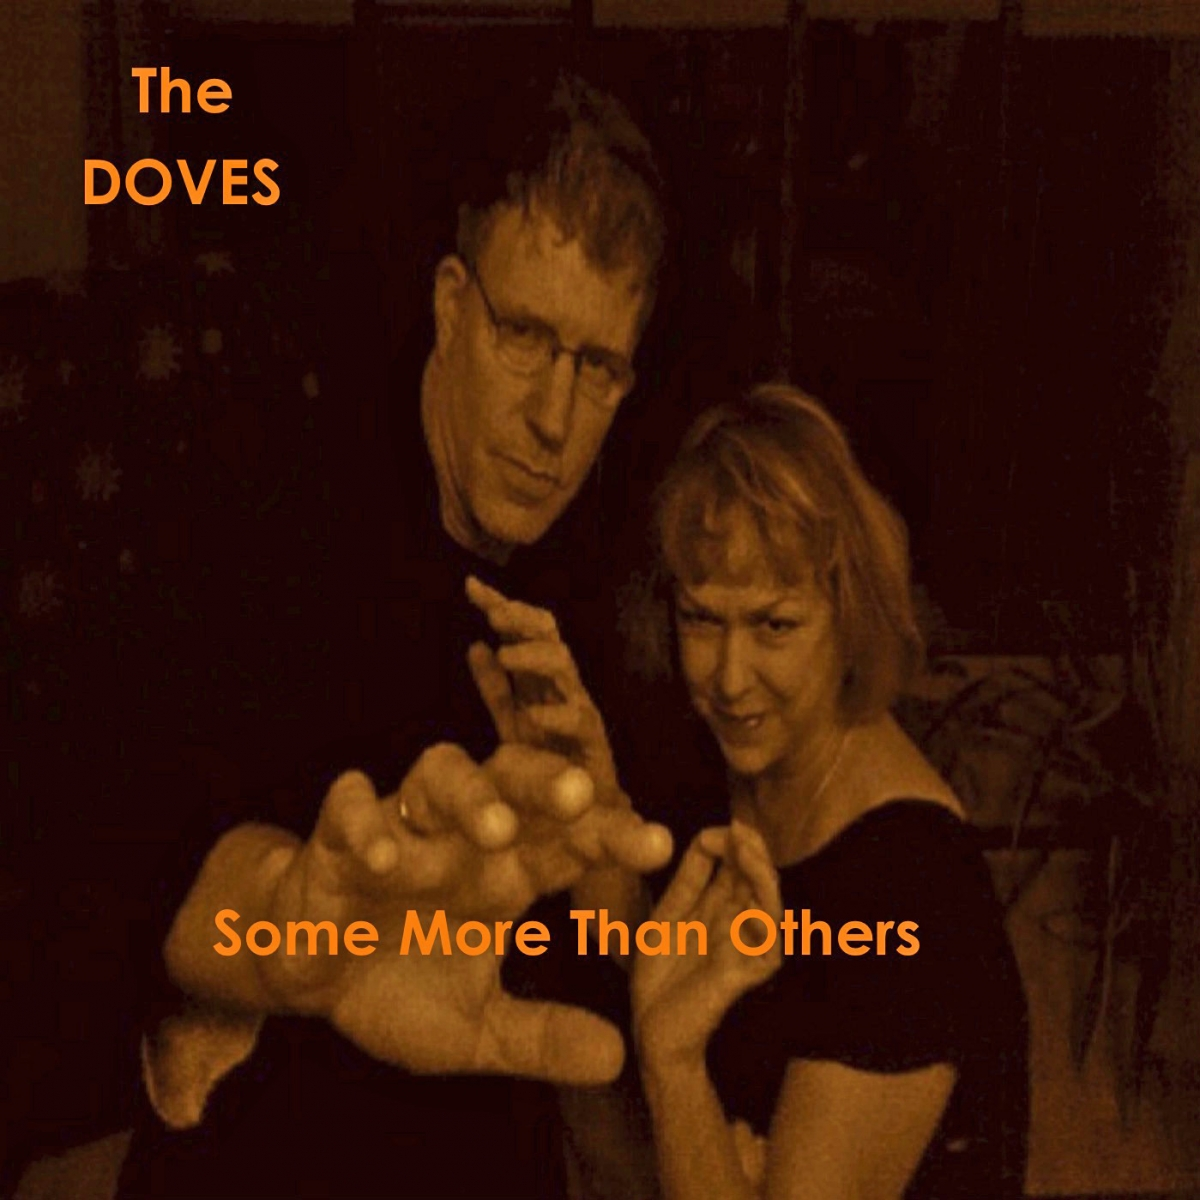 The Doves